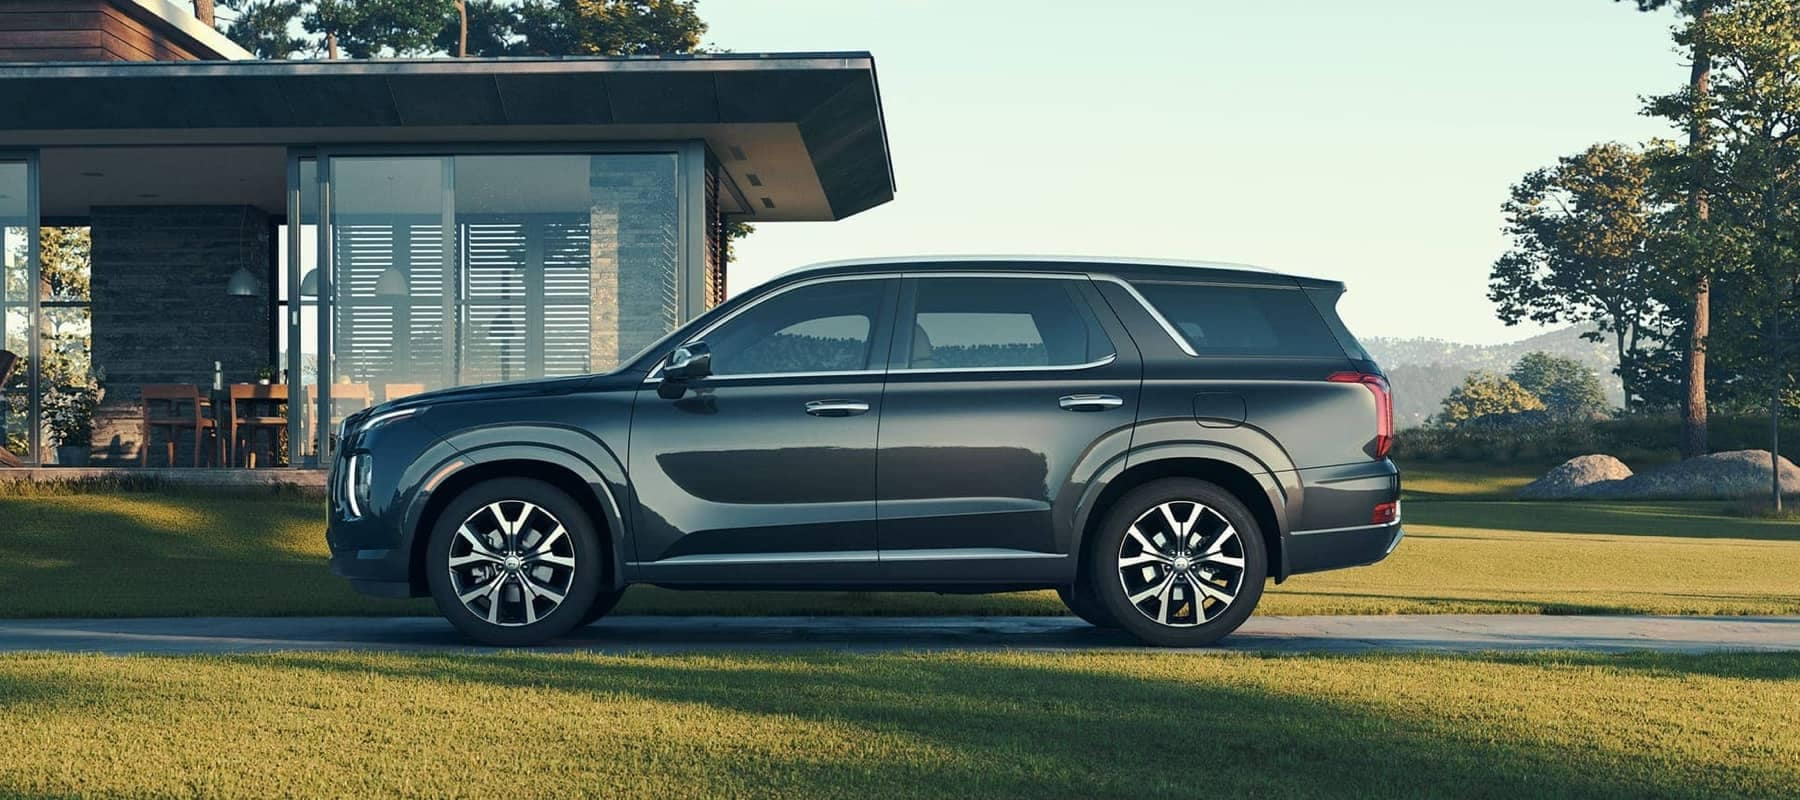 2020-hyundai-palisade-parked-in-front-of-a-house-1800x800